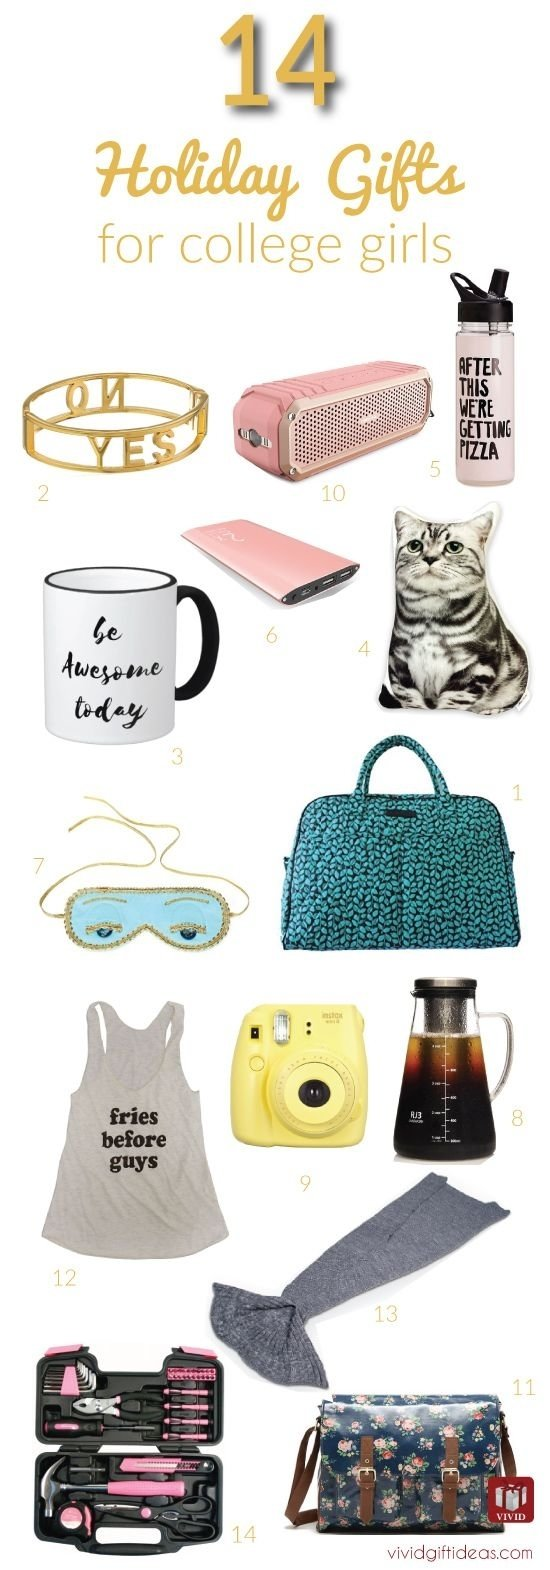 14 great christmas gift ideas for college girls | college girls